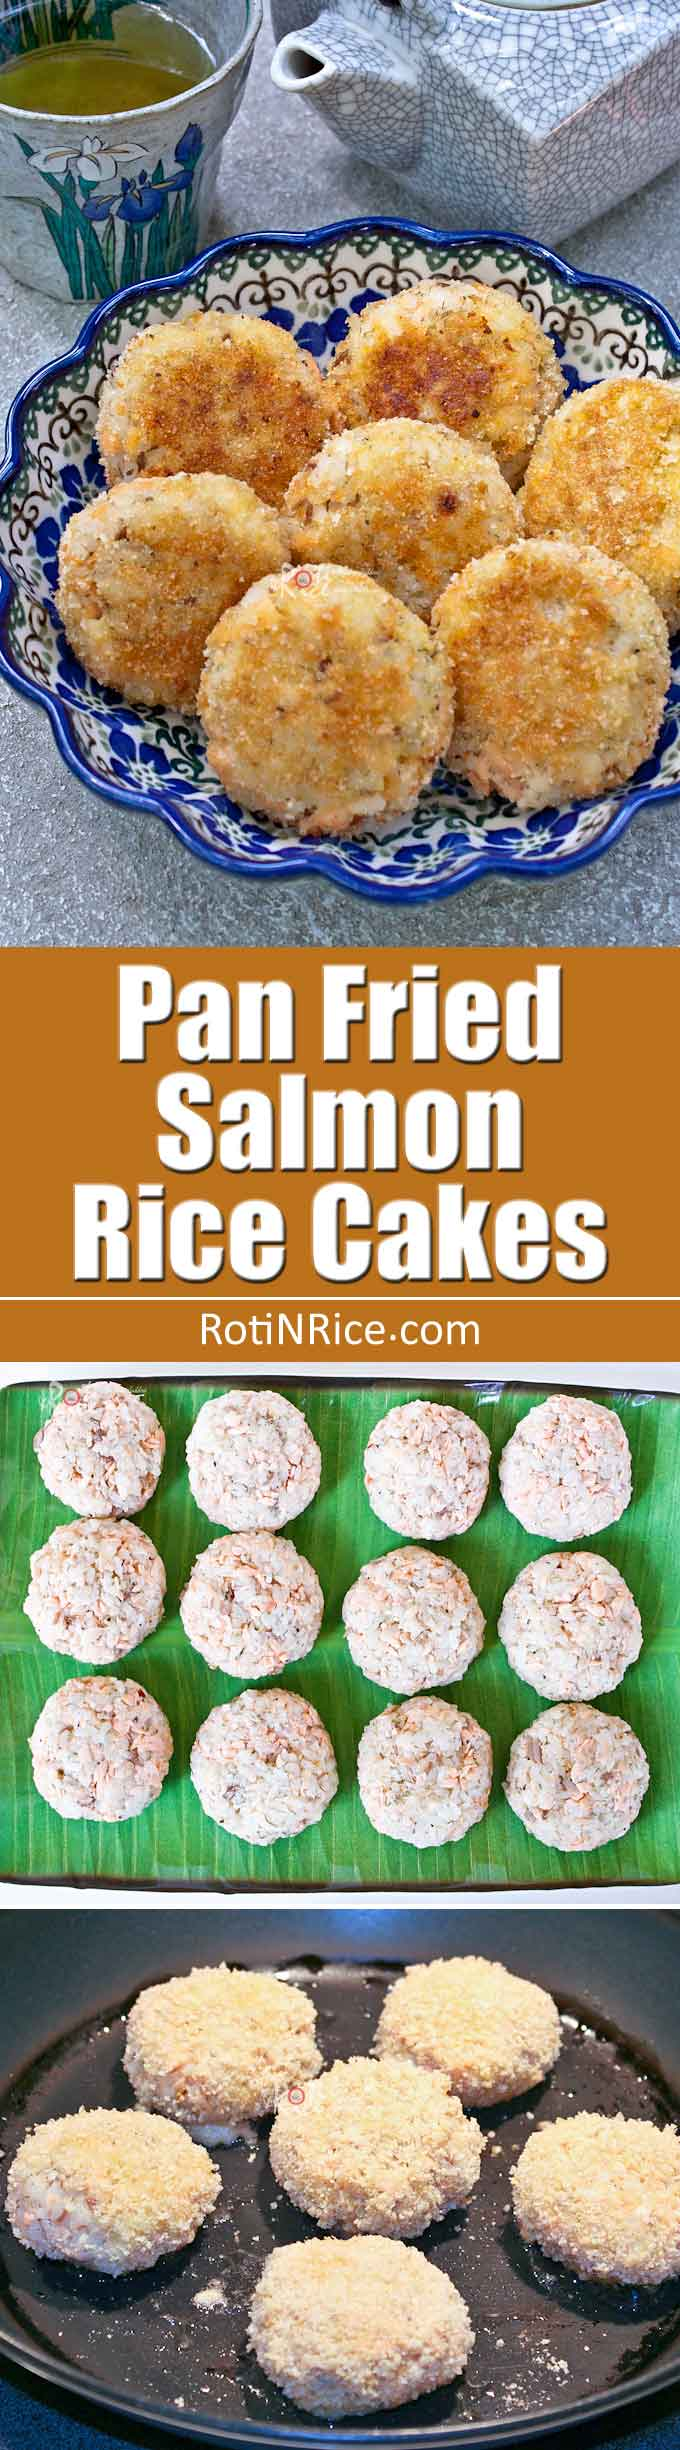 Delicious gluten free Pan Fried Salmon Rice Cakes made with poached salmon, cooked rice, dill weed, and lemon pepper. Great as appetizers or food-on-the-go. | RotiNRice.com